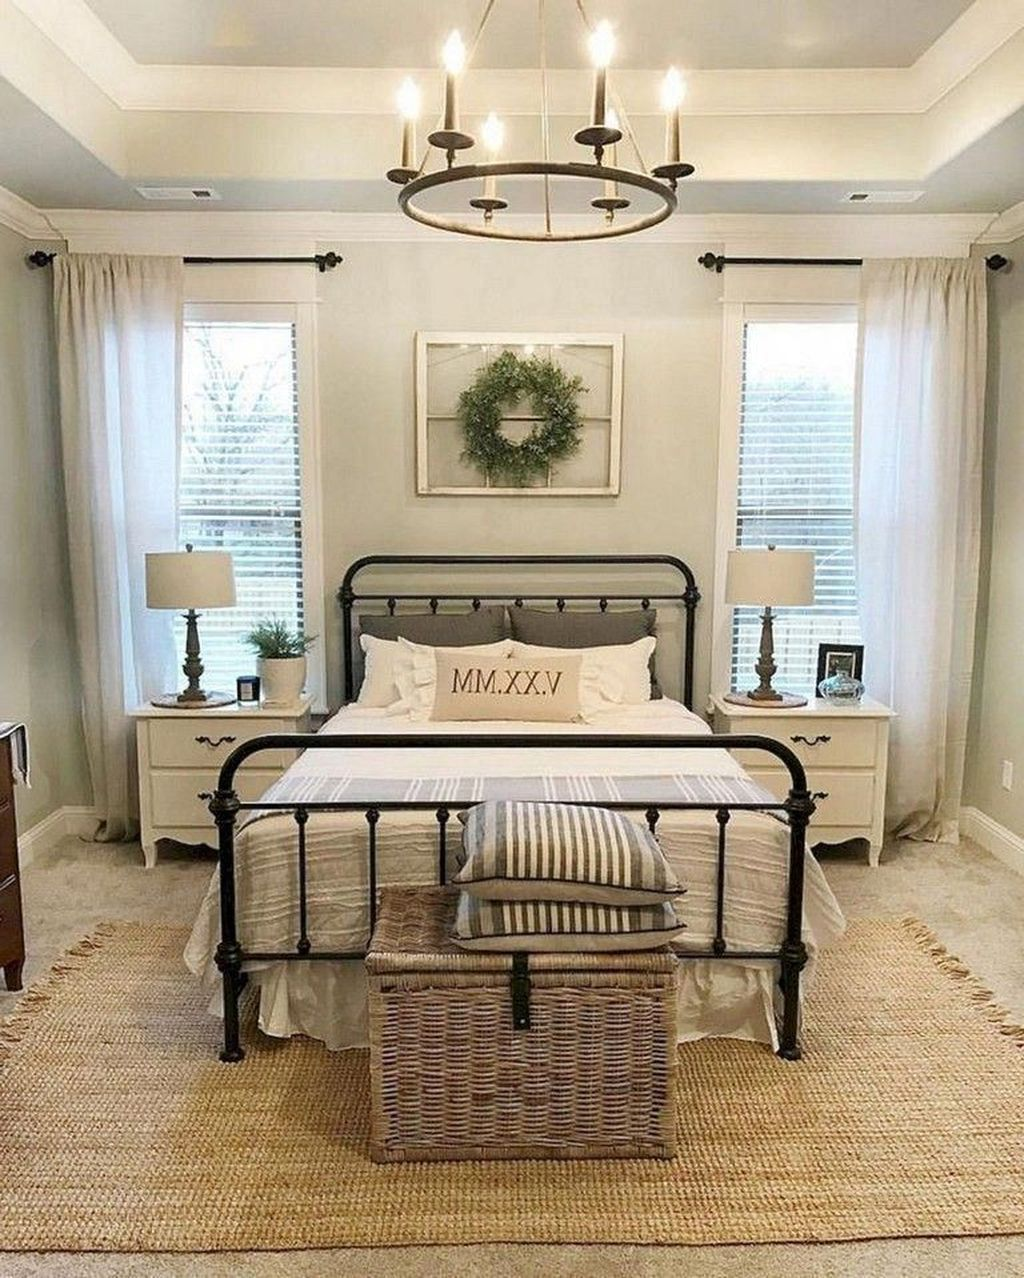 The Best Small Master Bedroom Design Ideas WIth Farmhouse Style 02